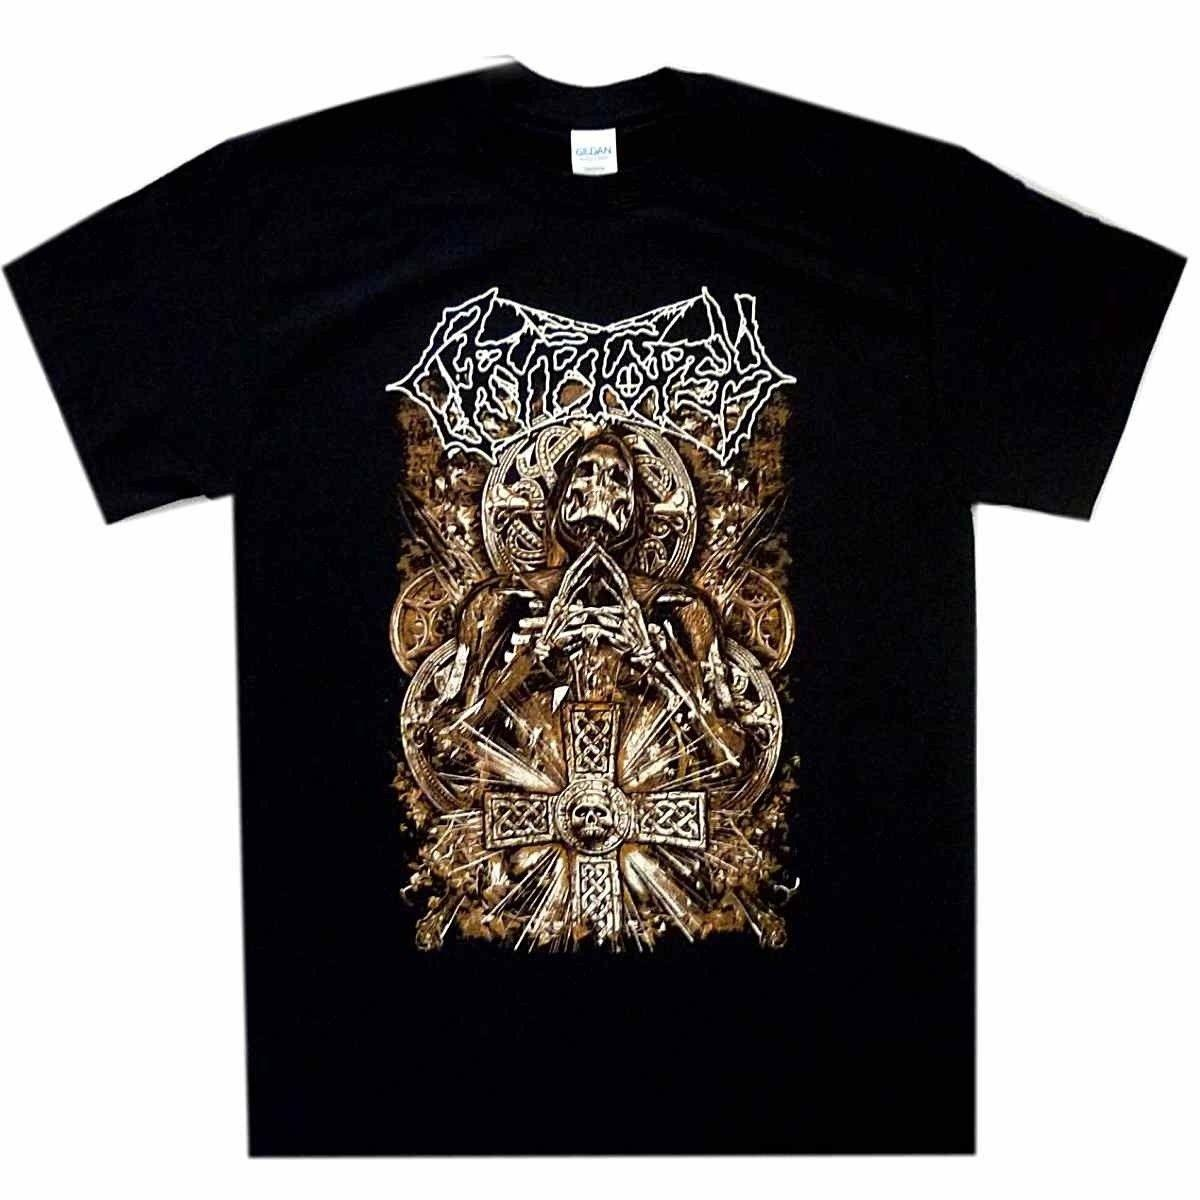 Cryptopsy Monk shirt officiel T-shirt mort de bande en métal T-shirt New New T-shirt de mode d'hommes T-shirts T-Top